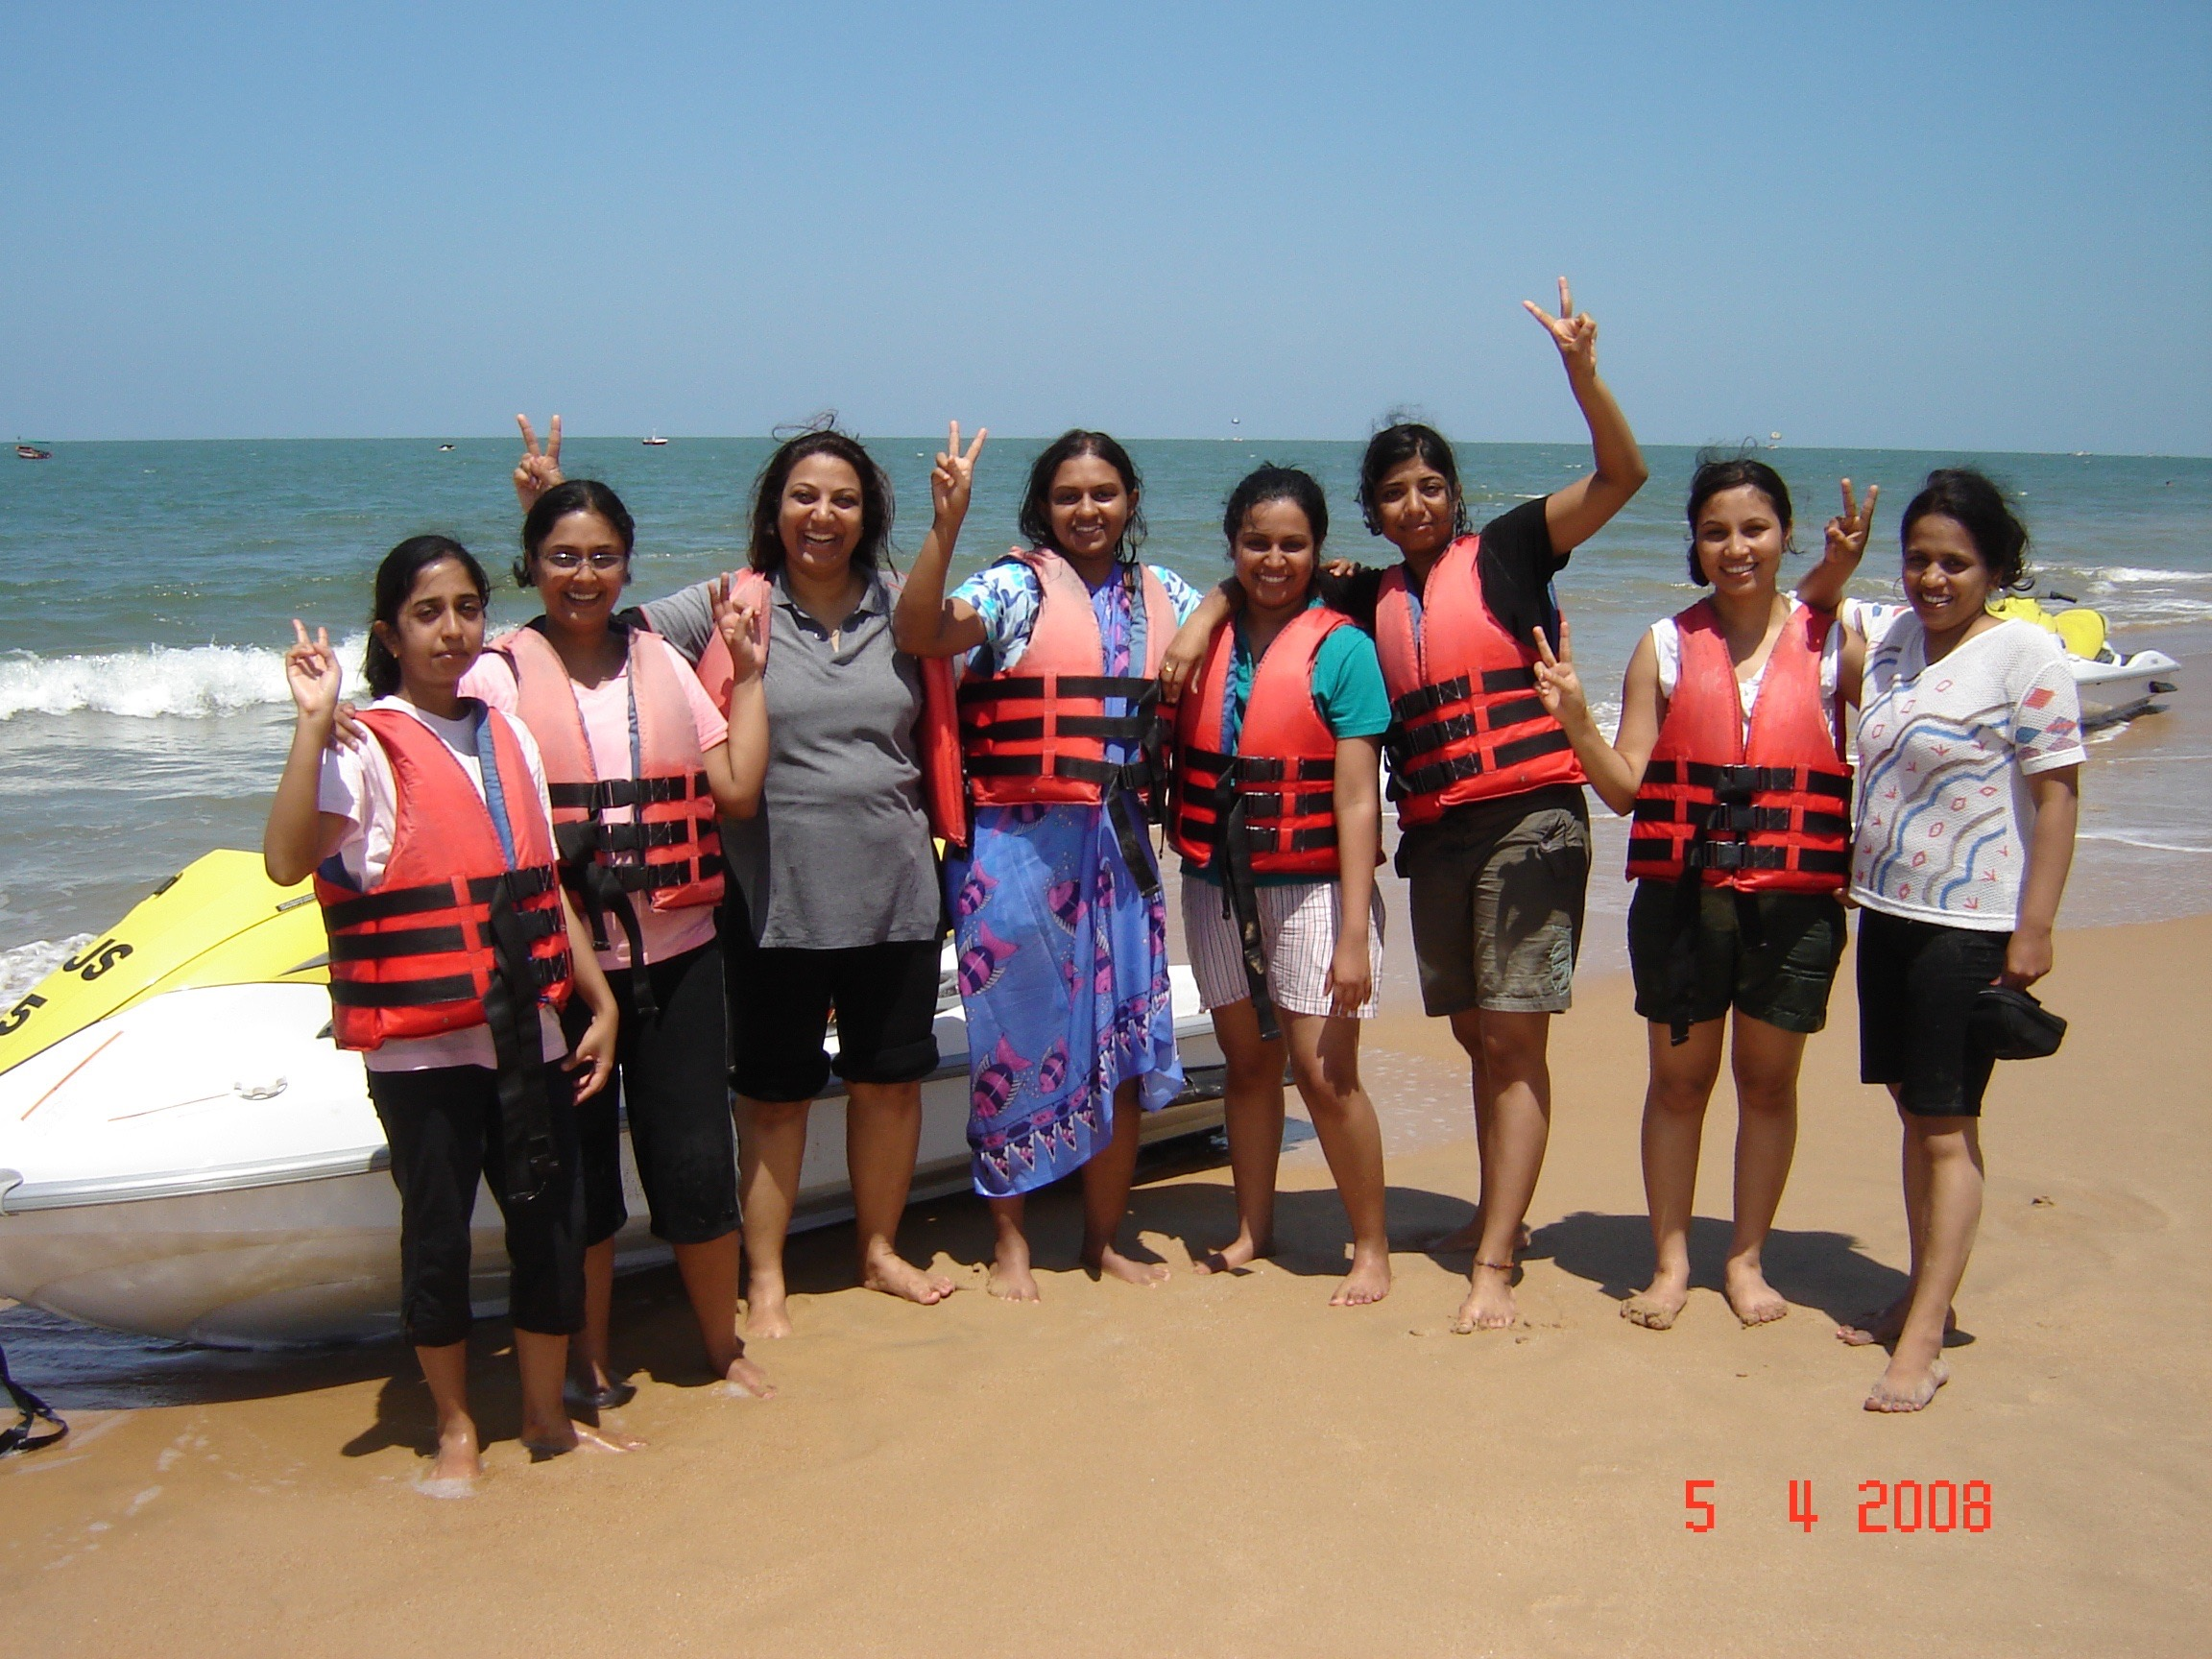 Annual retreat: Goa 2008